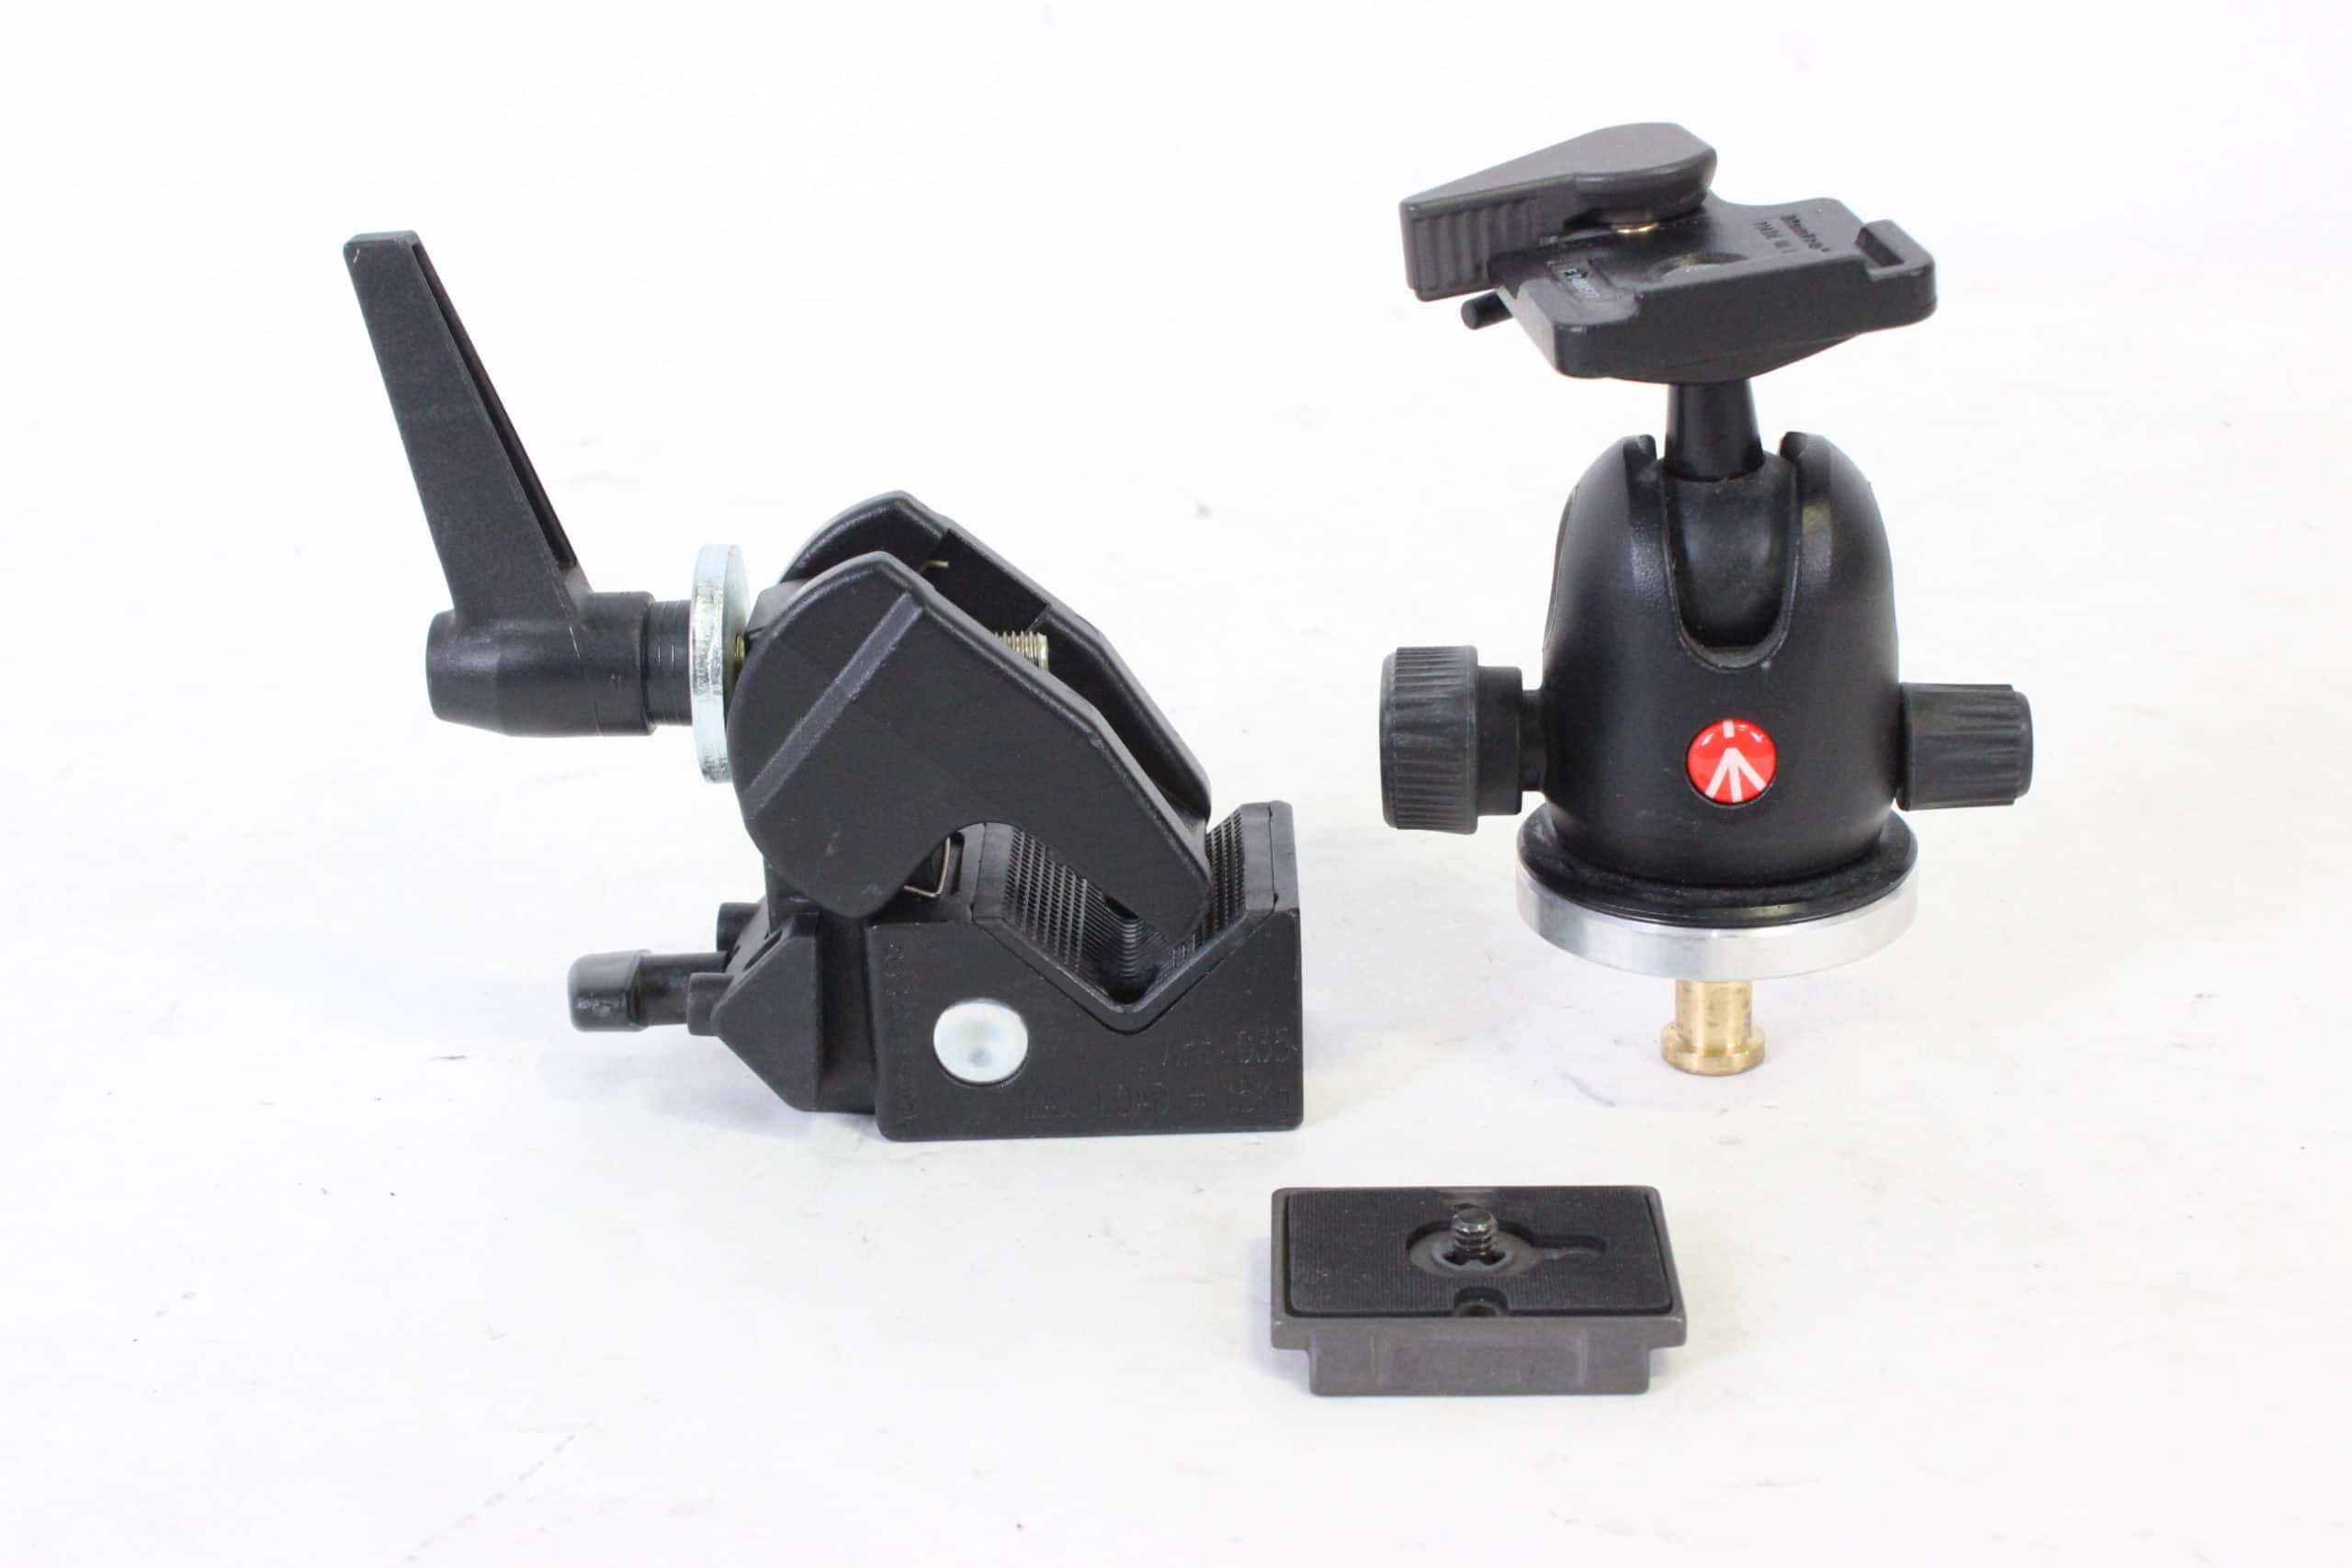 Manfrotto 496RC2 Compact Ball Tripod Head w/ RC2 Quick Release Plate & Super Clamp w/ Stud Main